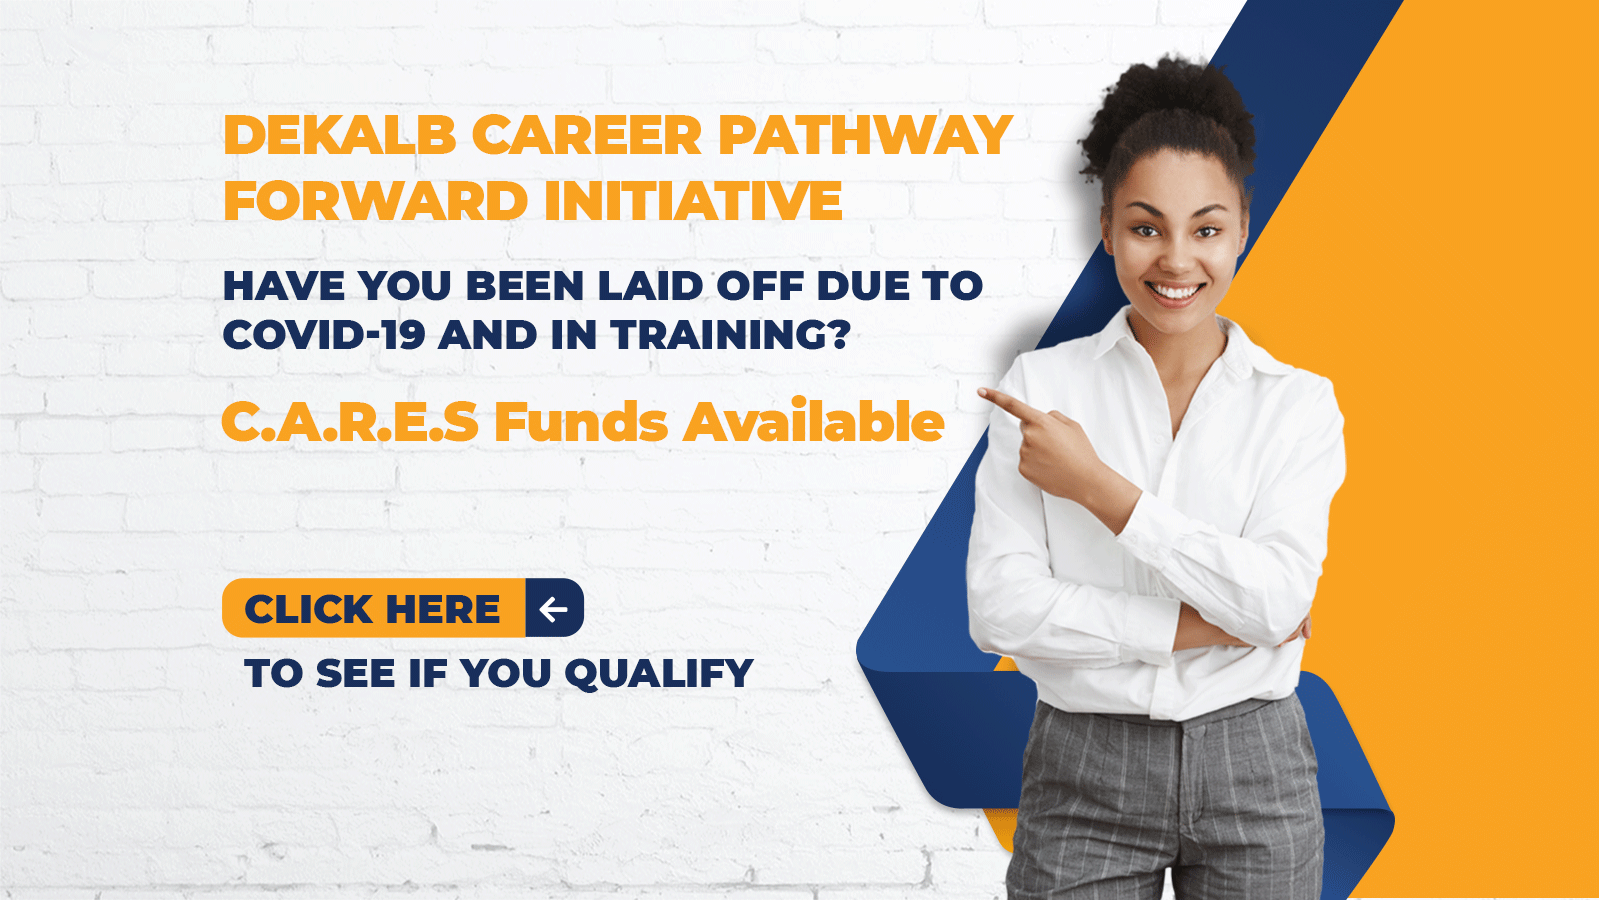 https://www.dekalbcountyga.gov/sites/default/files/2020-12/DeKalb-Career-Pathway-Forward-Initiative-Web-Banner_0.jpg